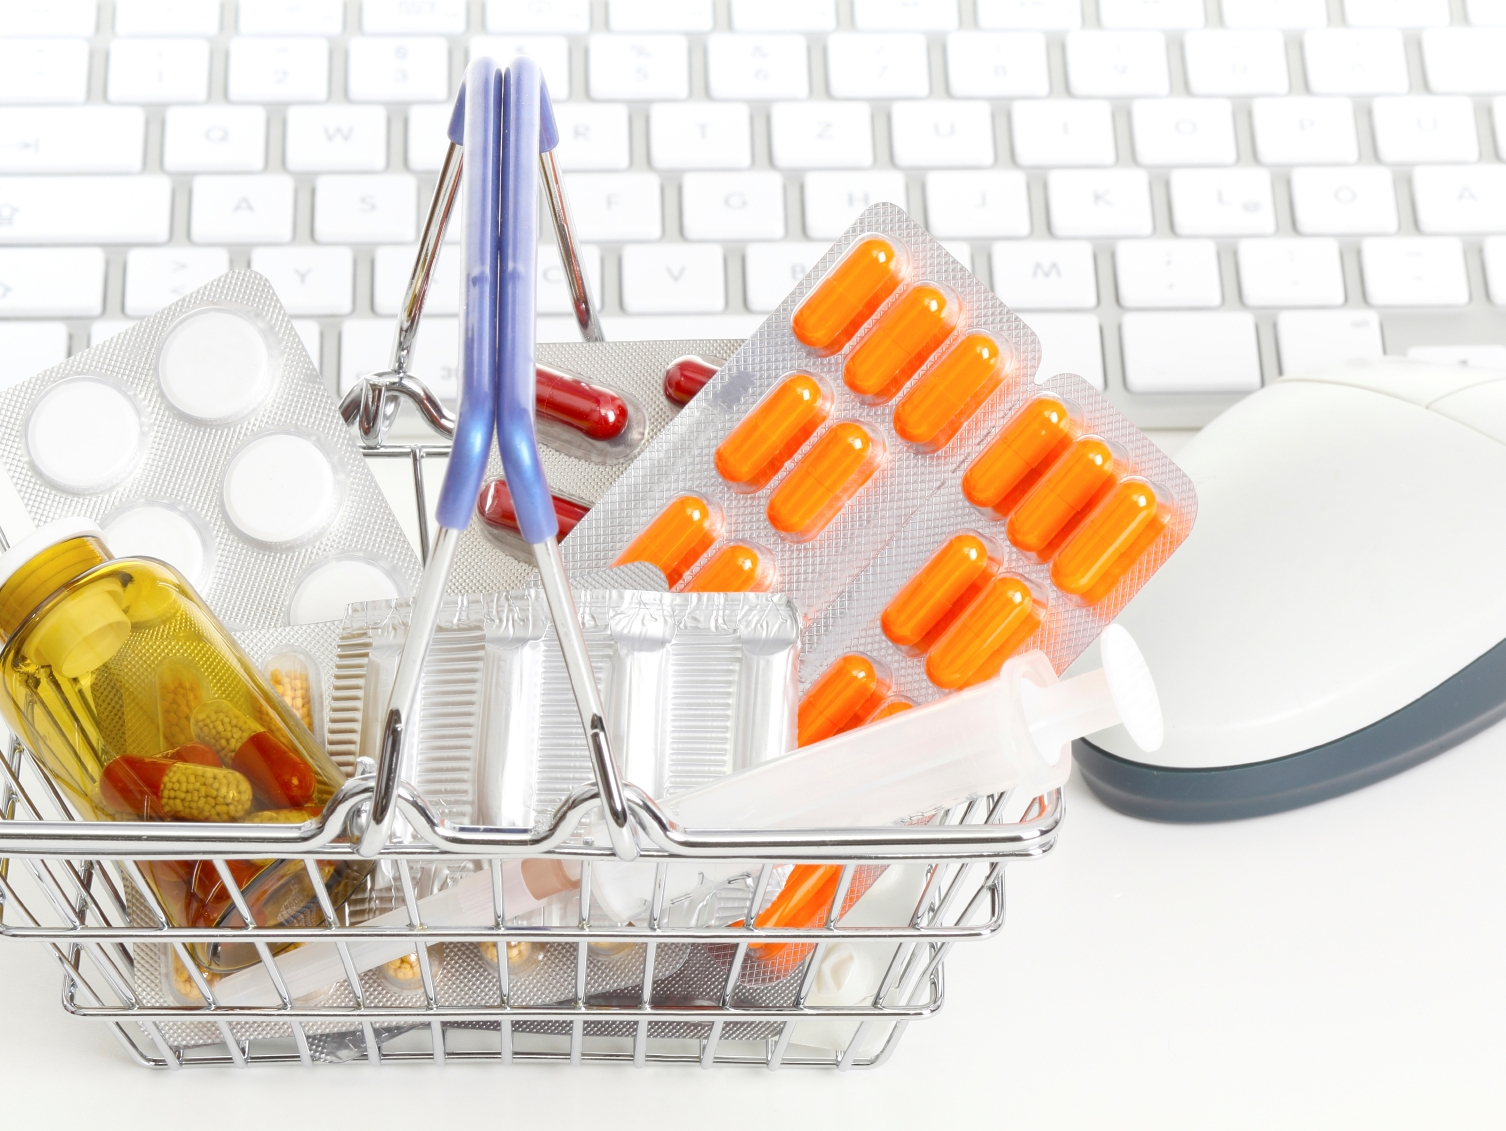 Online and Mail-Order Medicine-How to Buy Safely